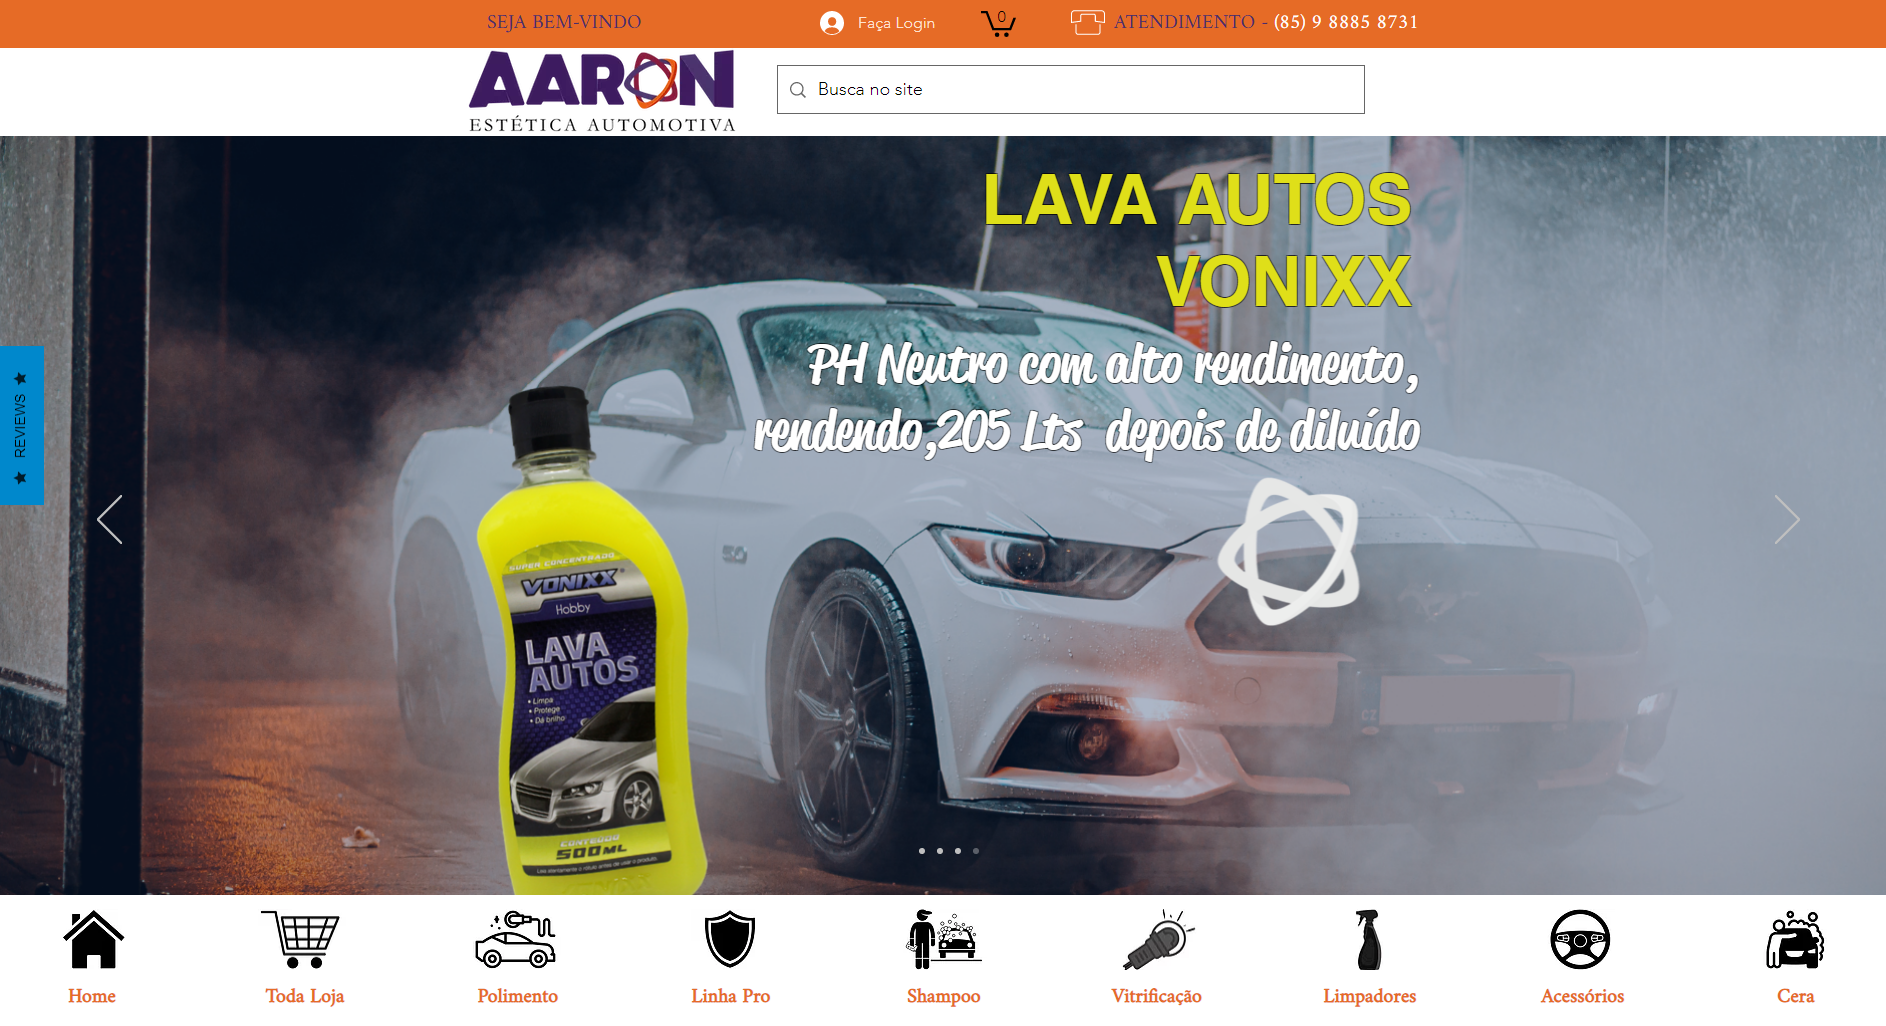 AARON ESTETICA AUTOMOTIVA